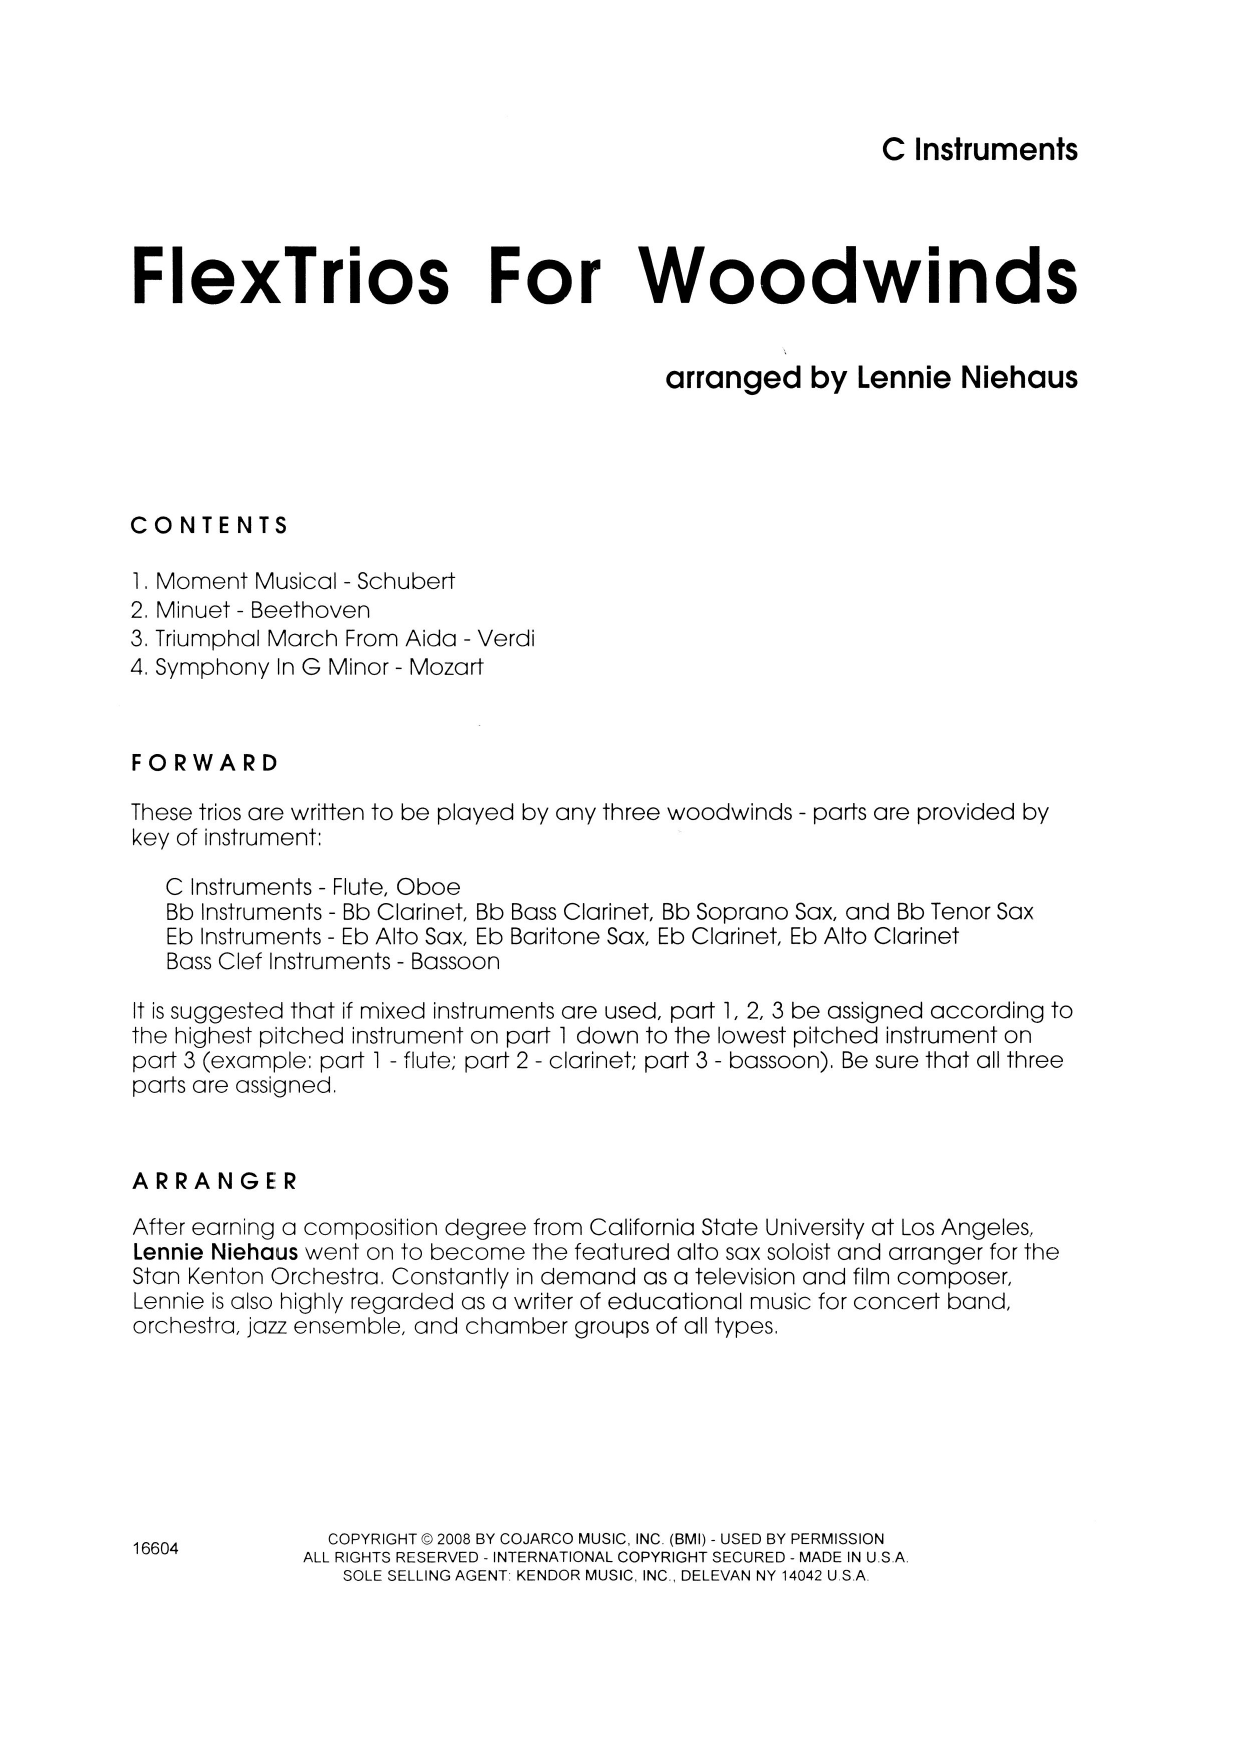 FlexTrios For Woodwinds (playable by any three woodwind instruments) (complete set of parts) sheet music for wind ensemble by Lennie Niehaus. Score Image Preview.